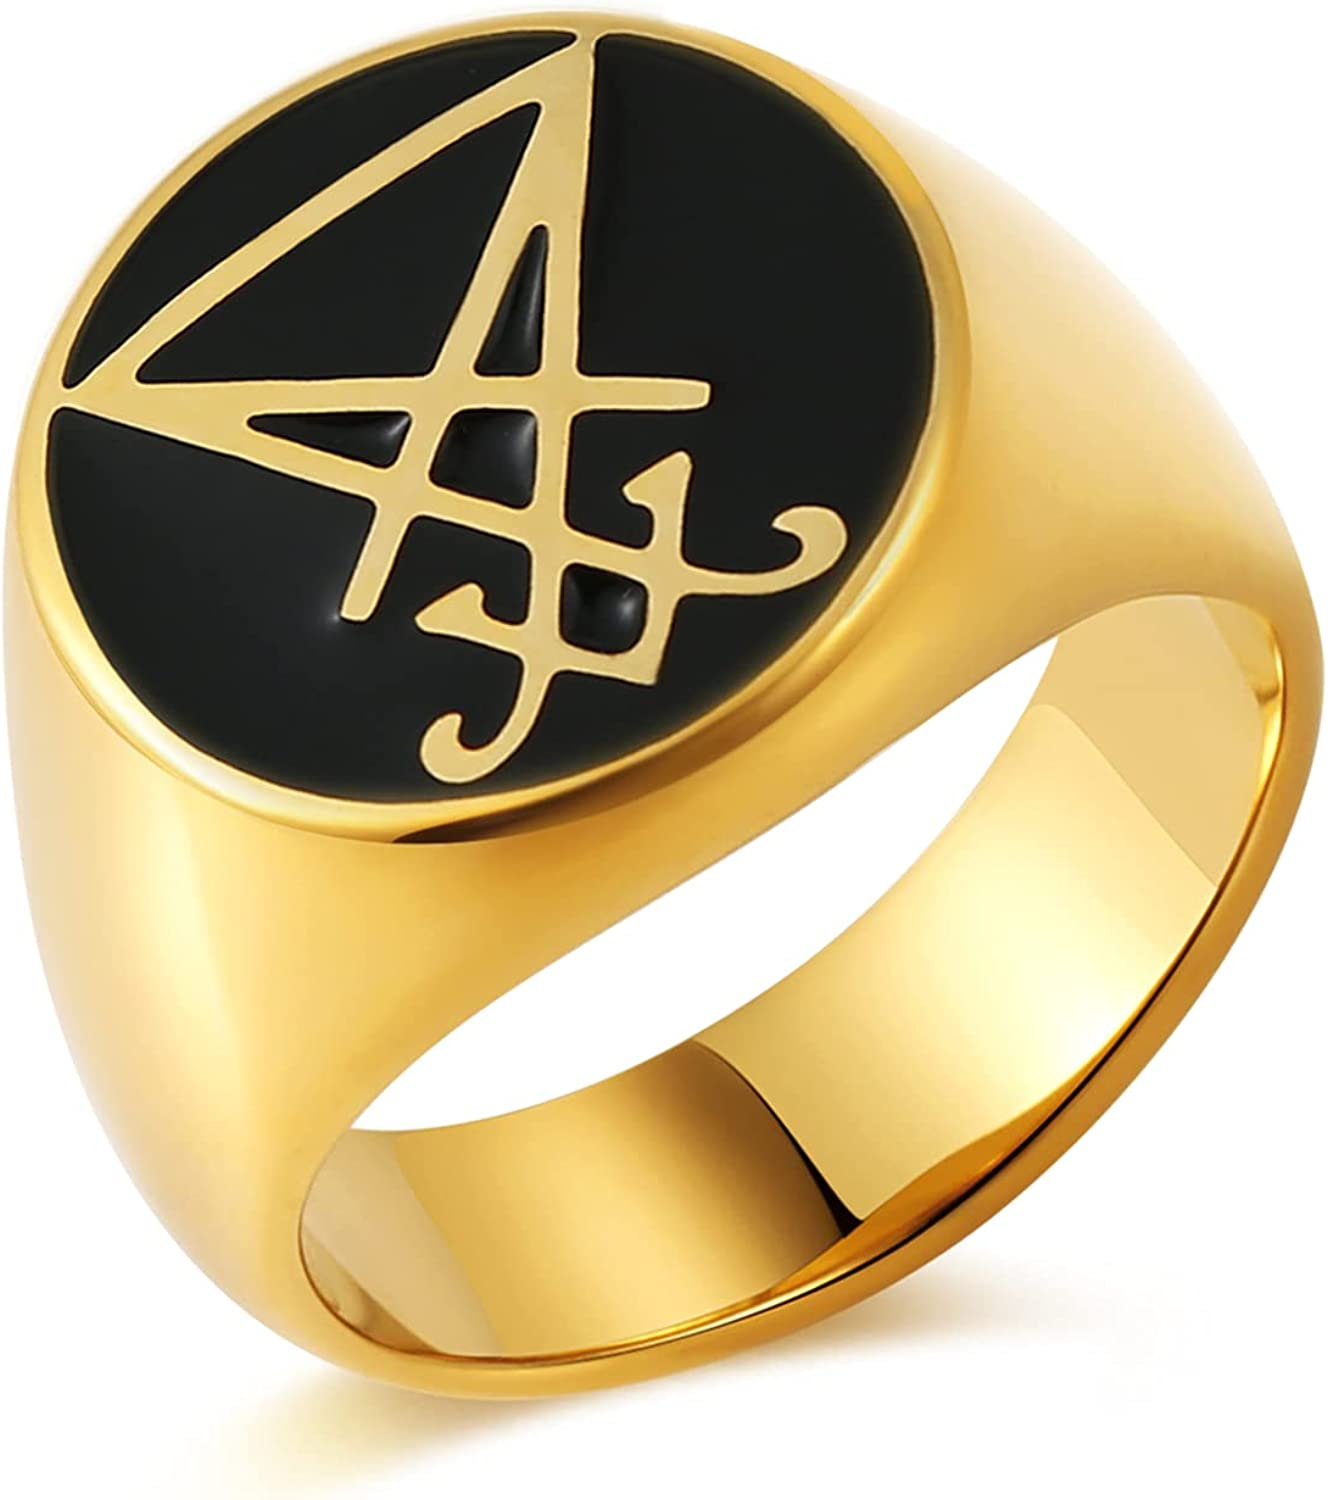 HZMAN Satan Lucifer Symbol Ring Gothic Stainless Steel Jewelry Mens Womens Size 7-12